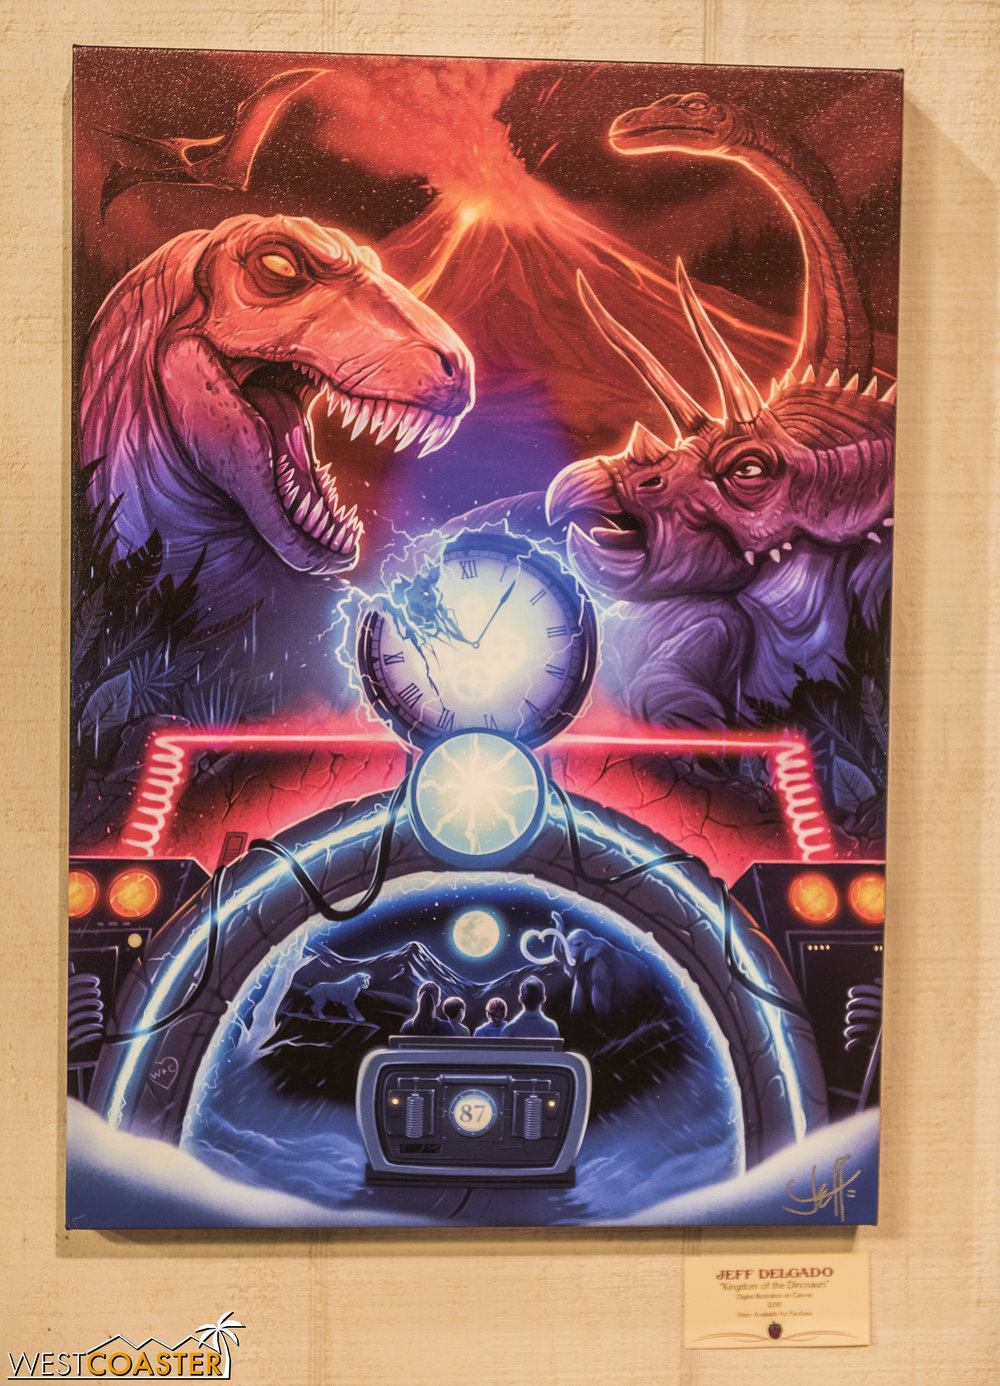 I love the almost 80's-esque vibe of this painting of the departed Kingdom of the Dinosaurs!